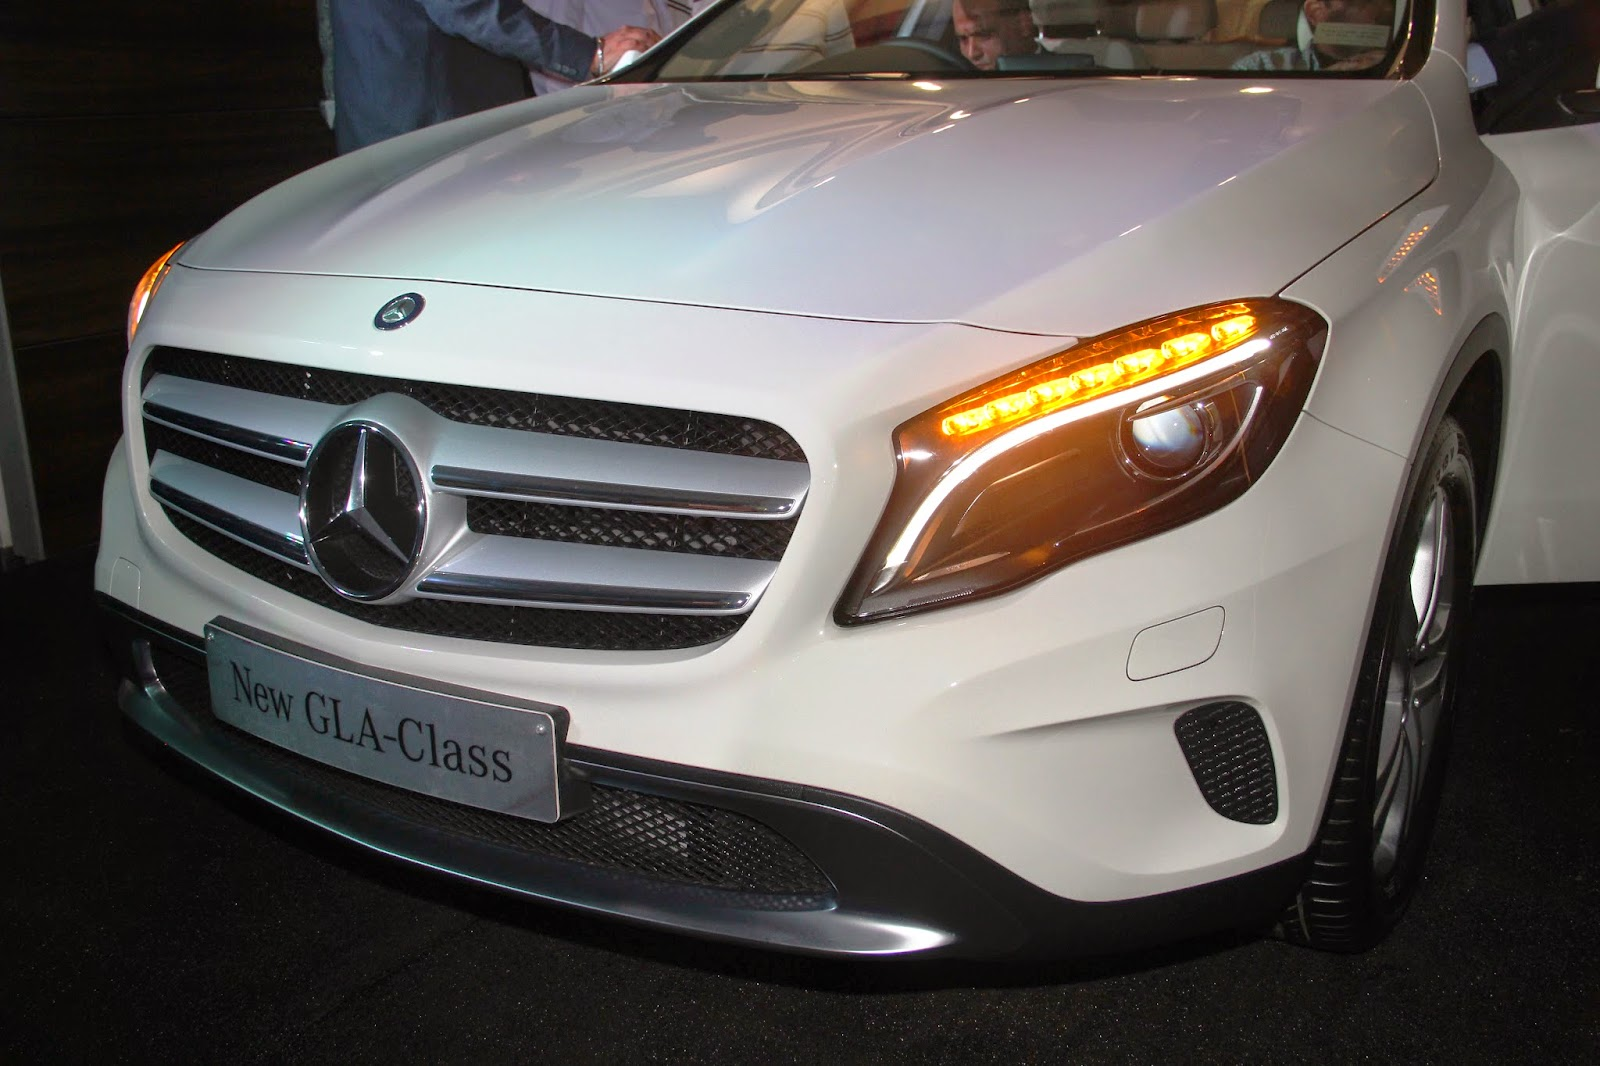 Mercedes-Benz GLA-Class Preview at Shaman Wheels,Kalina